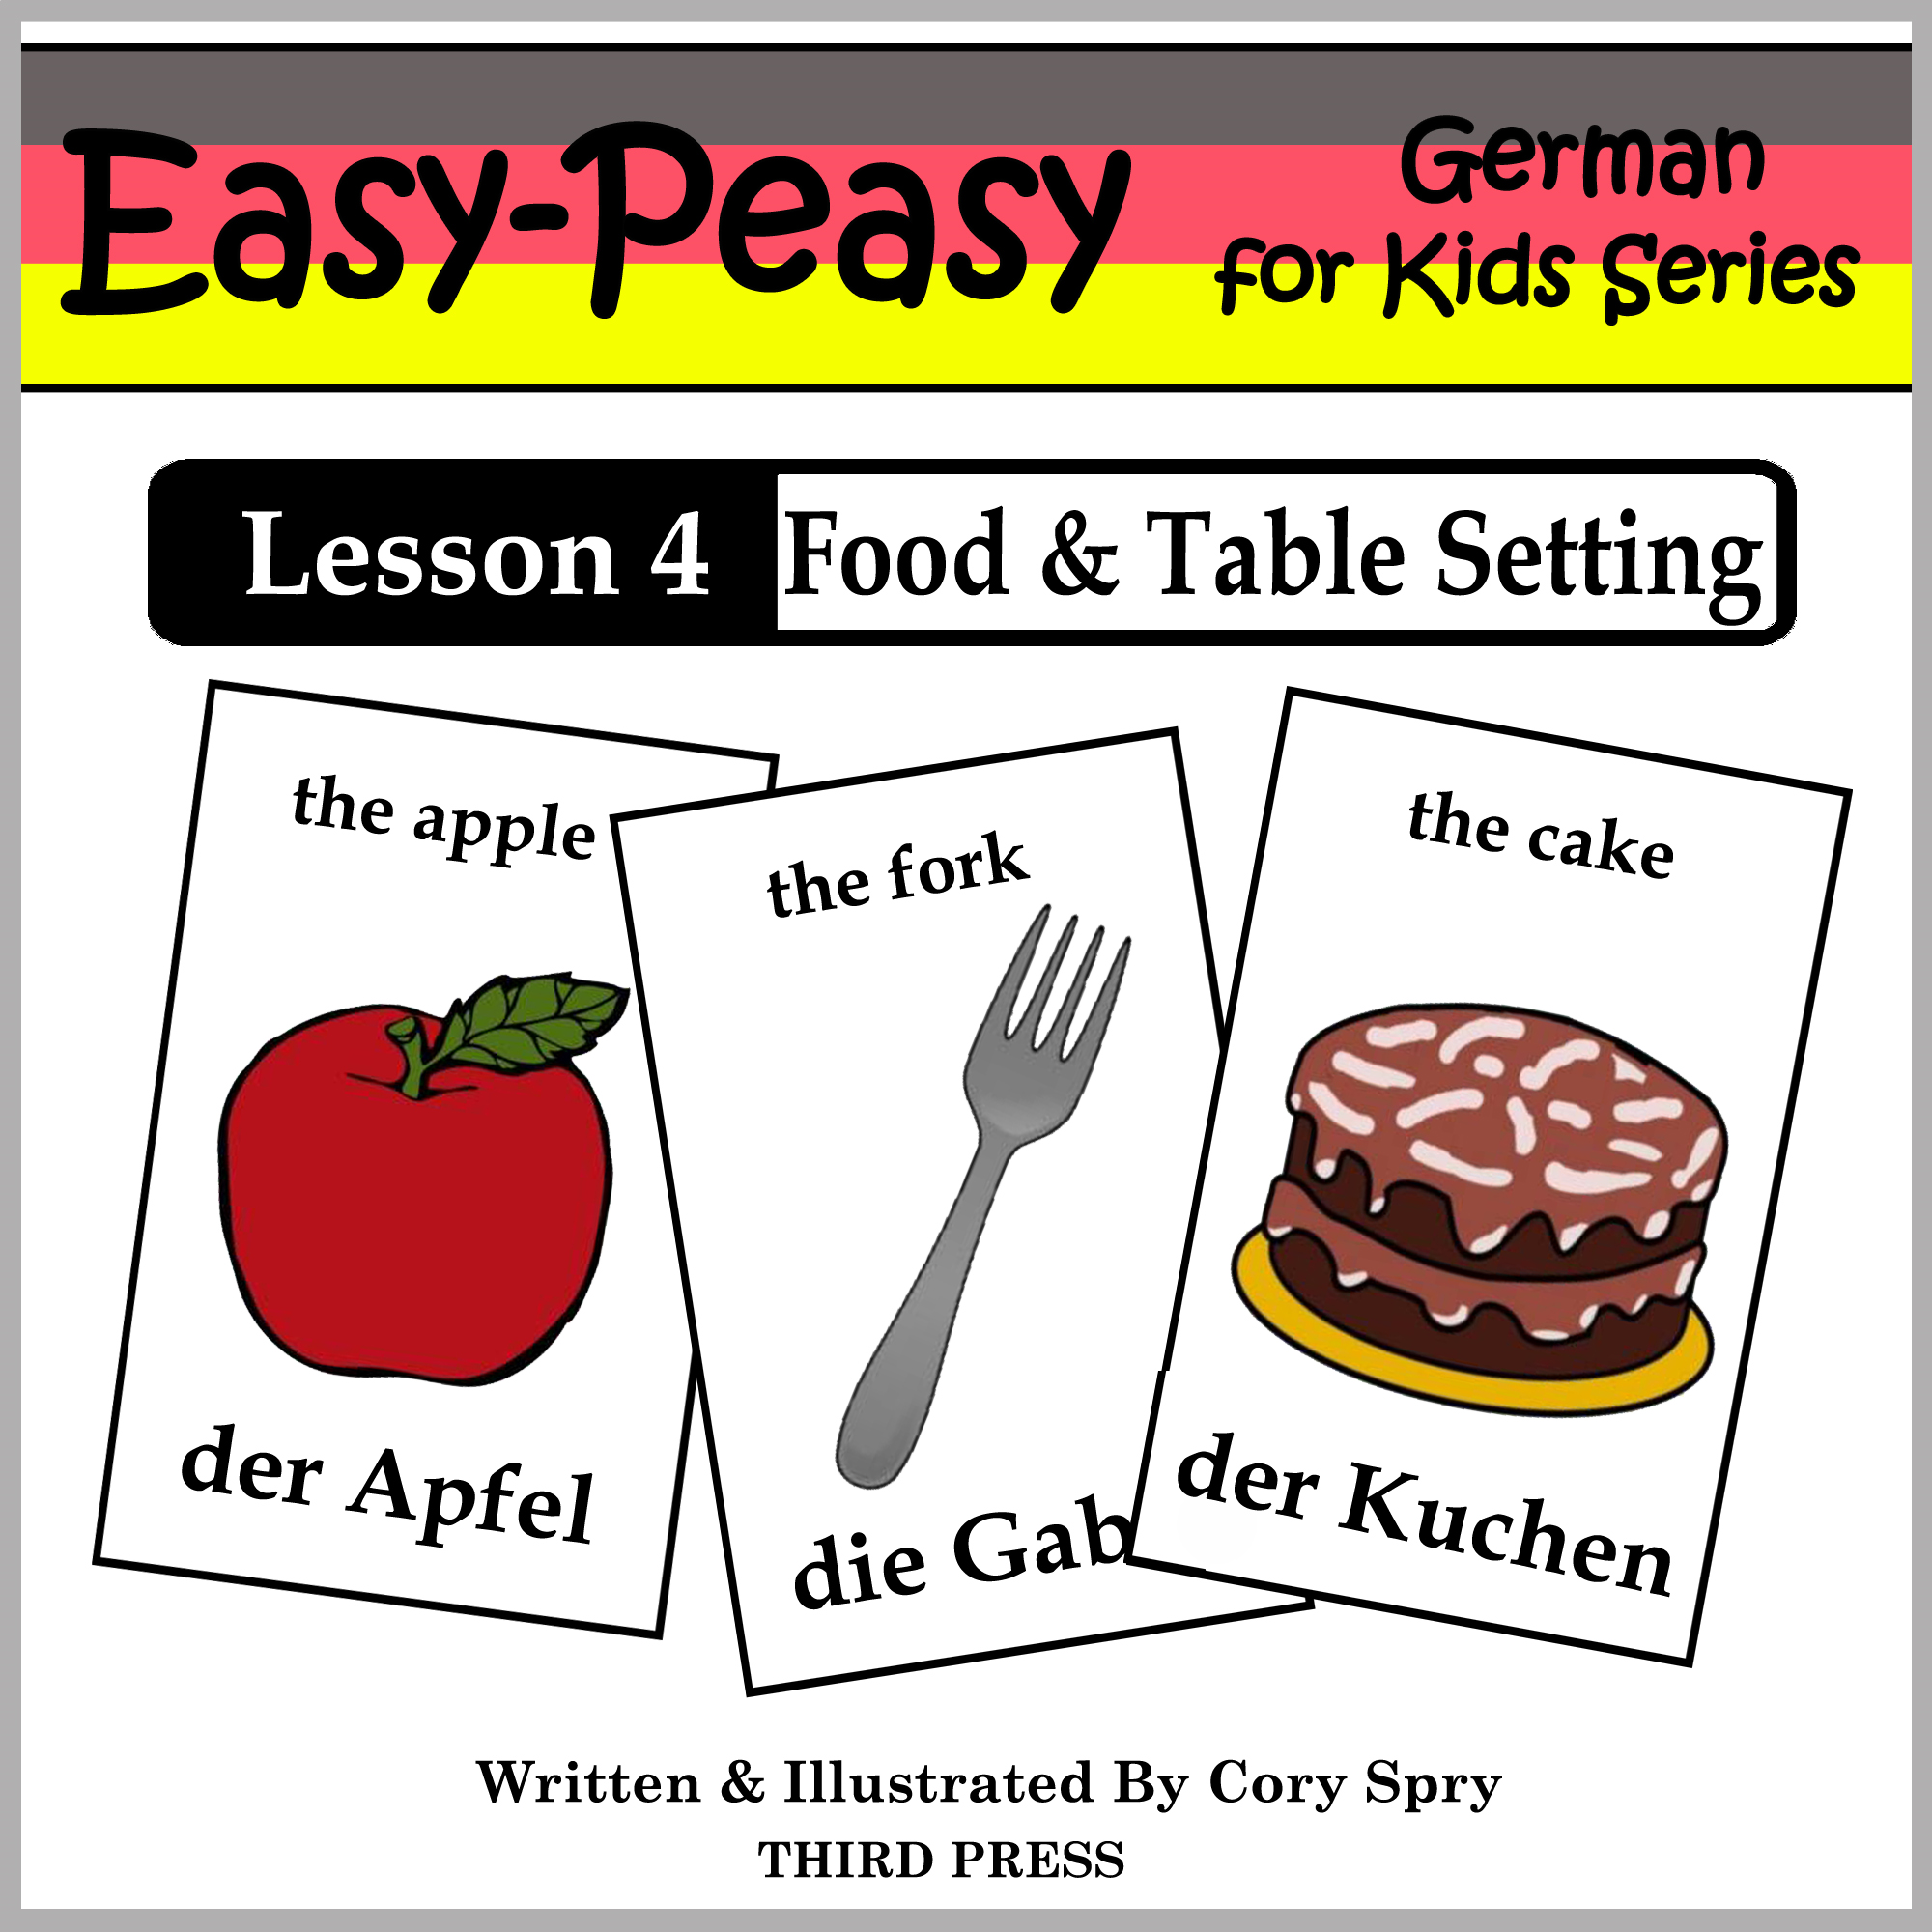 German Lesson 4: Food & Table Setting